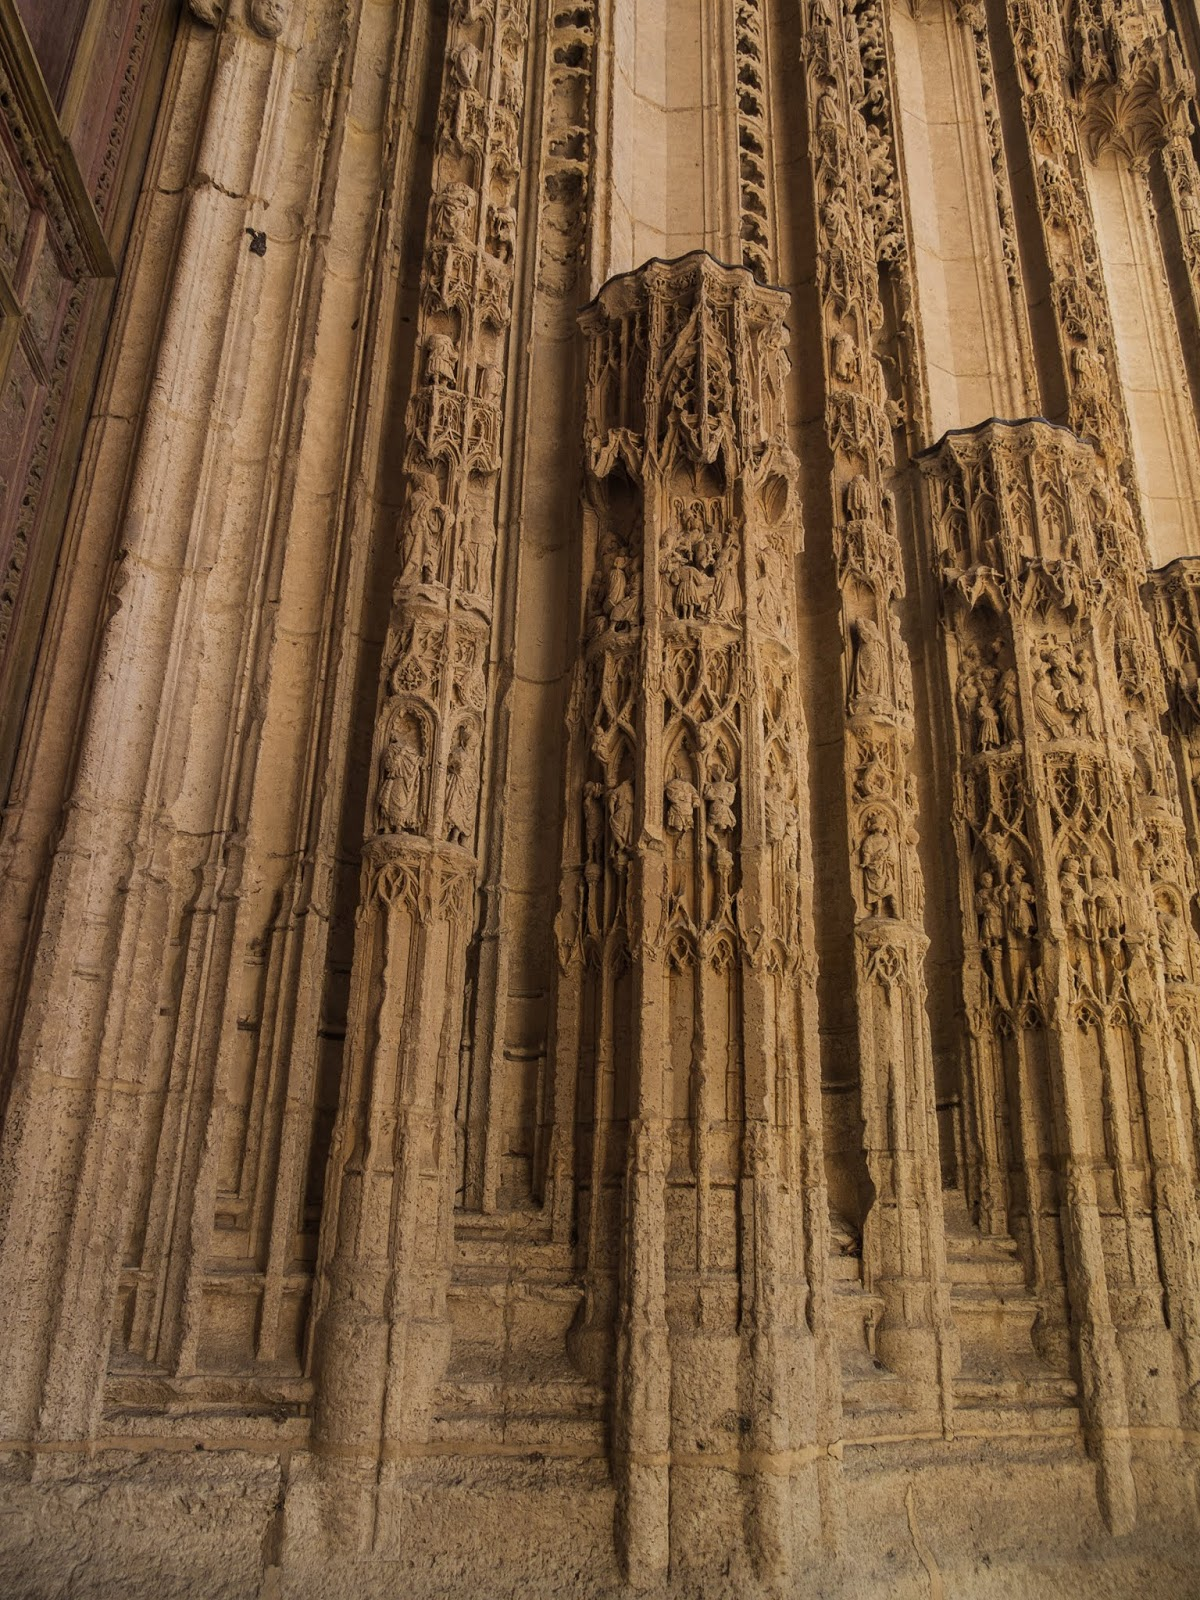 Carvings on the facade of Rouen's Cathedral in Normandy.